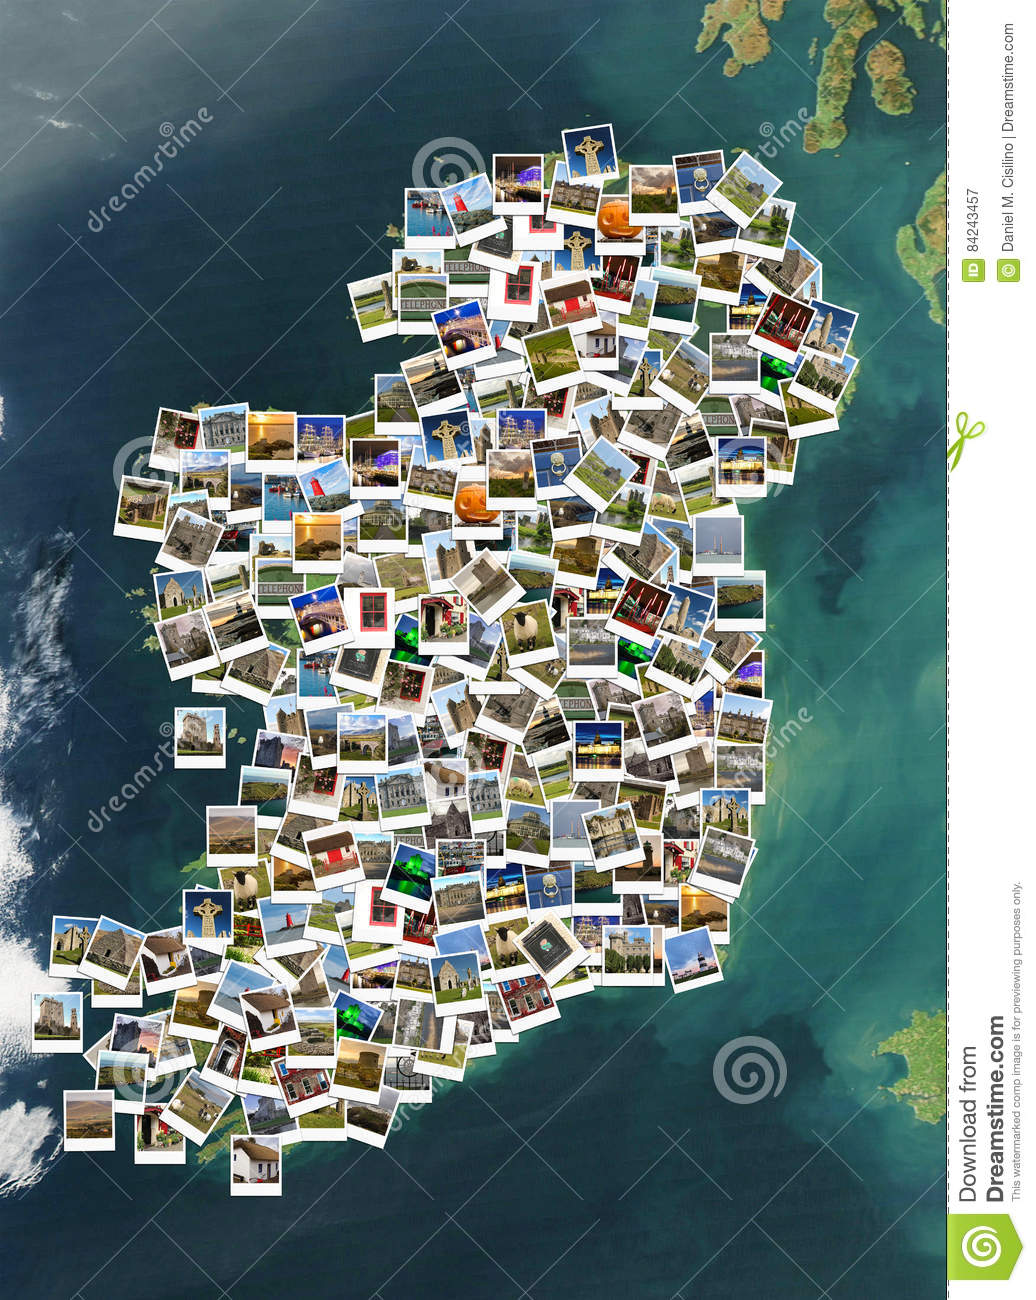 Map Of Ireland Historical Sites.Travel In Ireland Collage Map Made Of Polaroids Stock Image